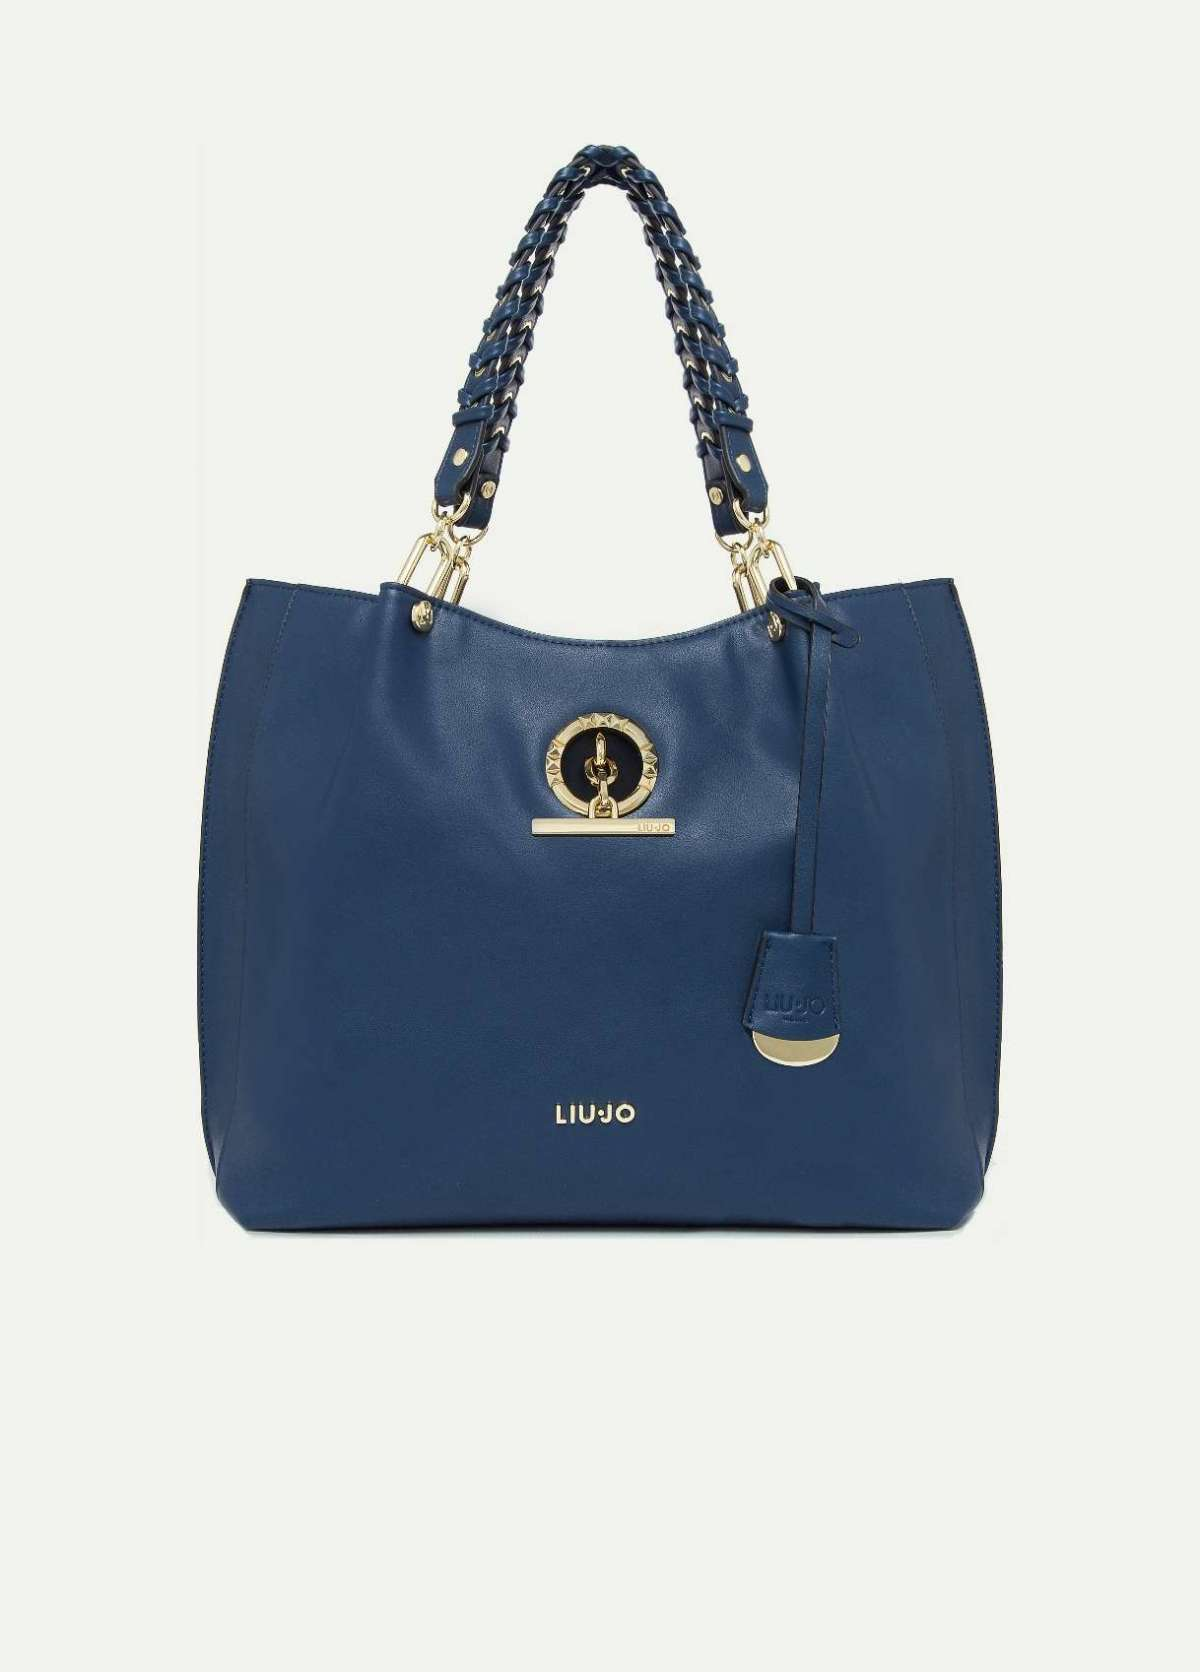 Borsa It Bag Liu Jo blu a 139 euro